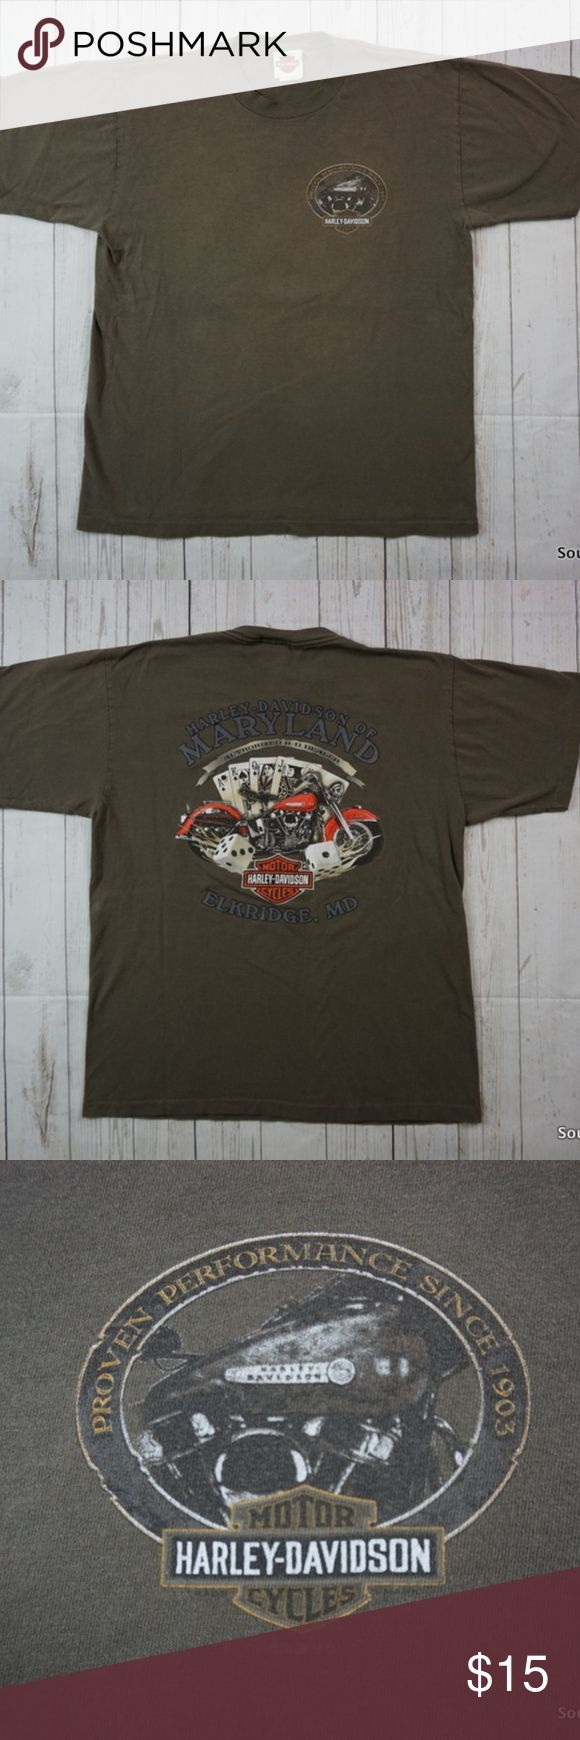 """Harley-Davidson Elkridge Maryland T-Shirt Large Harley-Davidson Motorcycles Elkridge Maryland MD Royal Flush T Shirt Men's Large  Brand: Harley-Davidson Size: Men's Large Material: Cotton  Detailed Measurements: (Front Side of Garment has been measured laying flat on a table)  Sleeves:             8"""" inches Chest:                21"""" inches Length:              27.5"""" inches  -Everything comes from a clean, smoke free and climate controlled environment.  -Orders are packaged and shipped in 24…"""